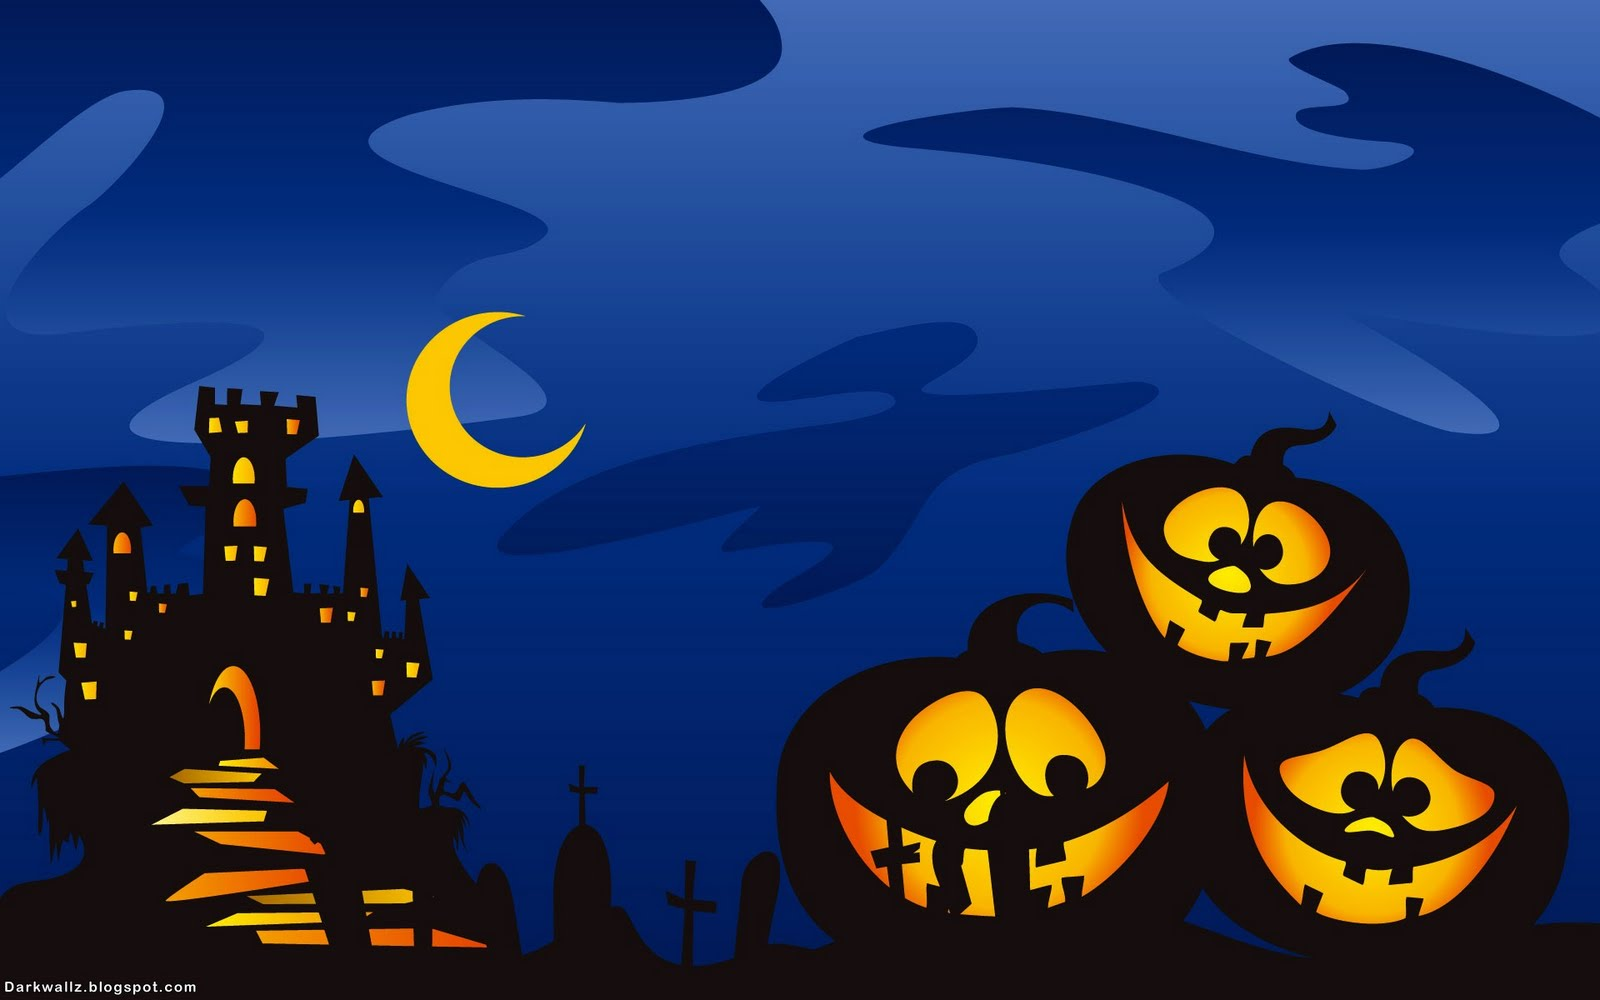 Halloween Wallpapers 67| Dark Wallpaper Download